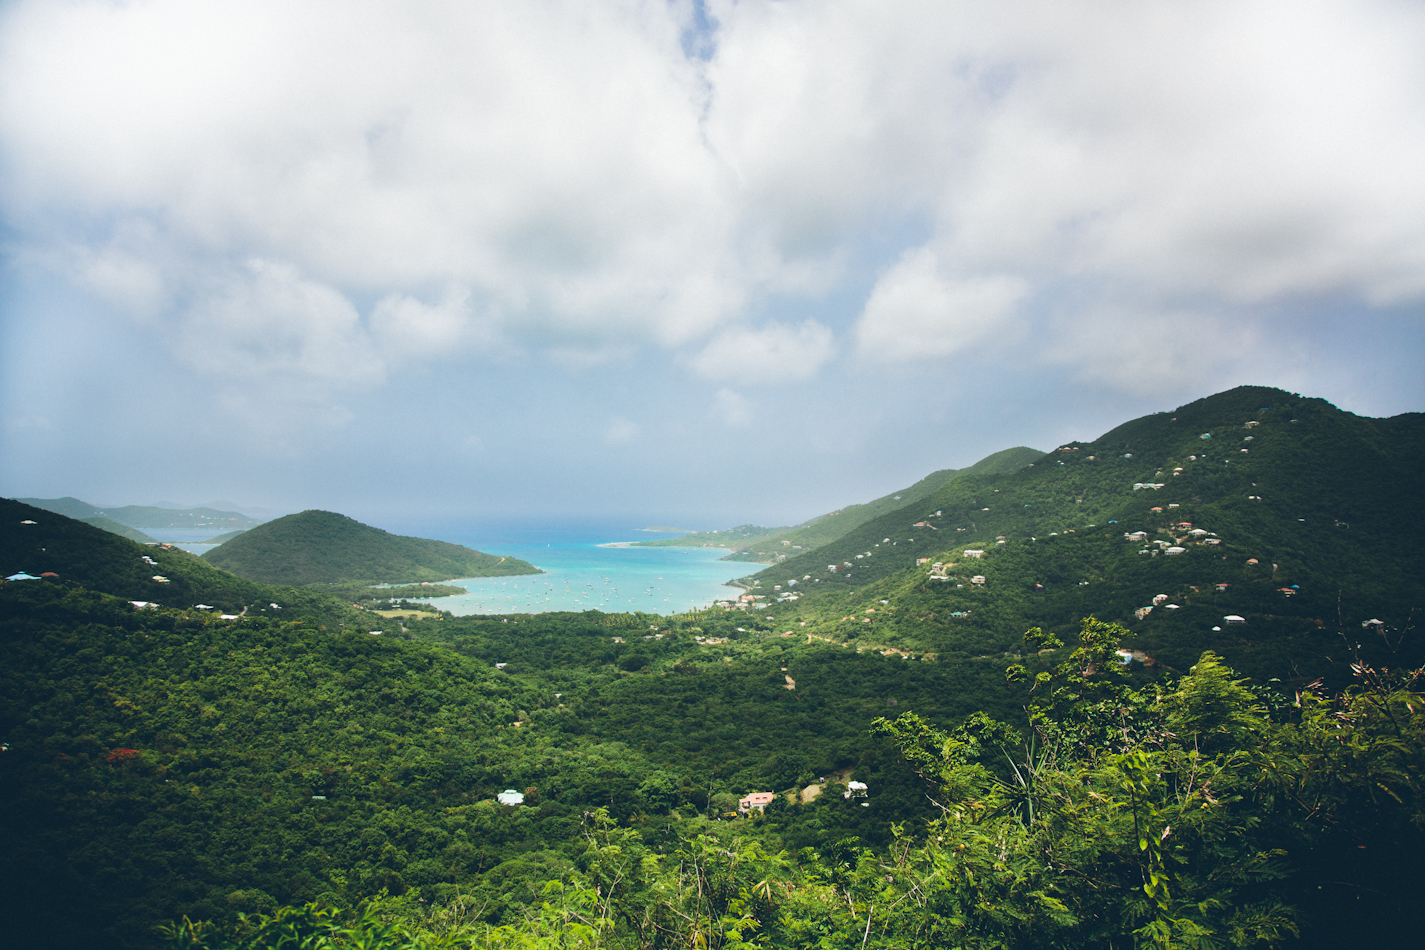 Saint John, USVI by Paige Jones